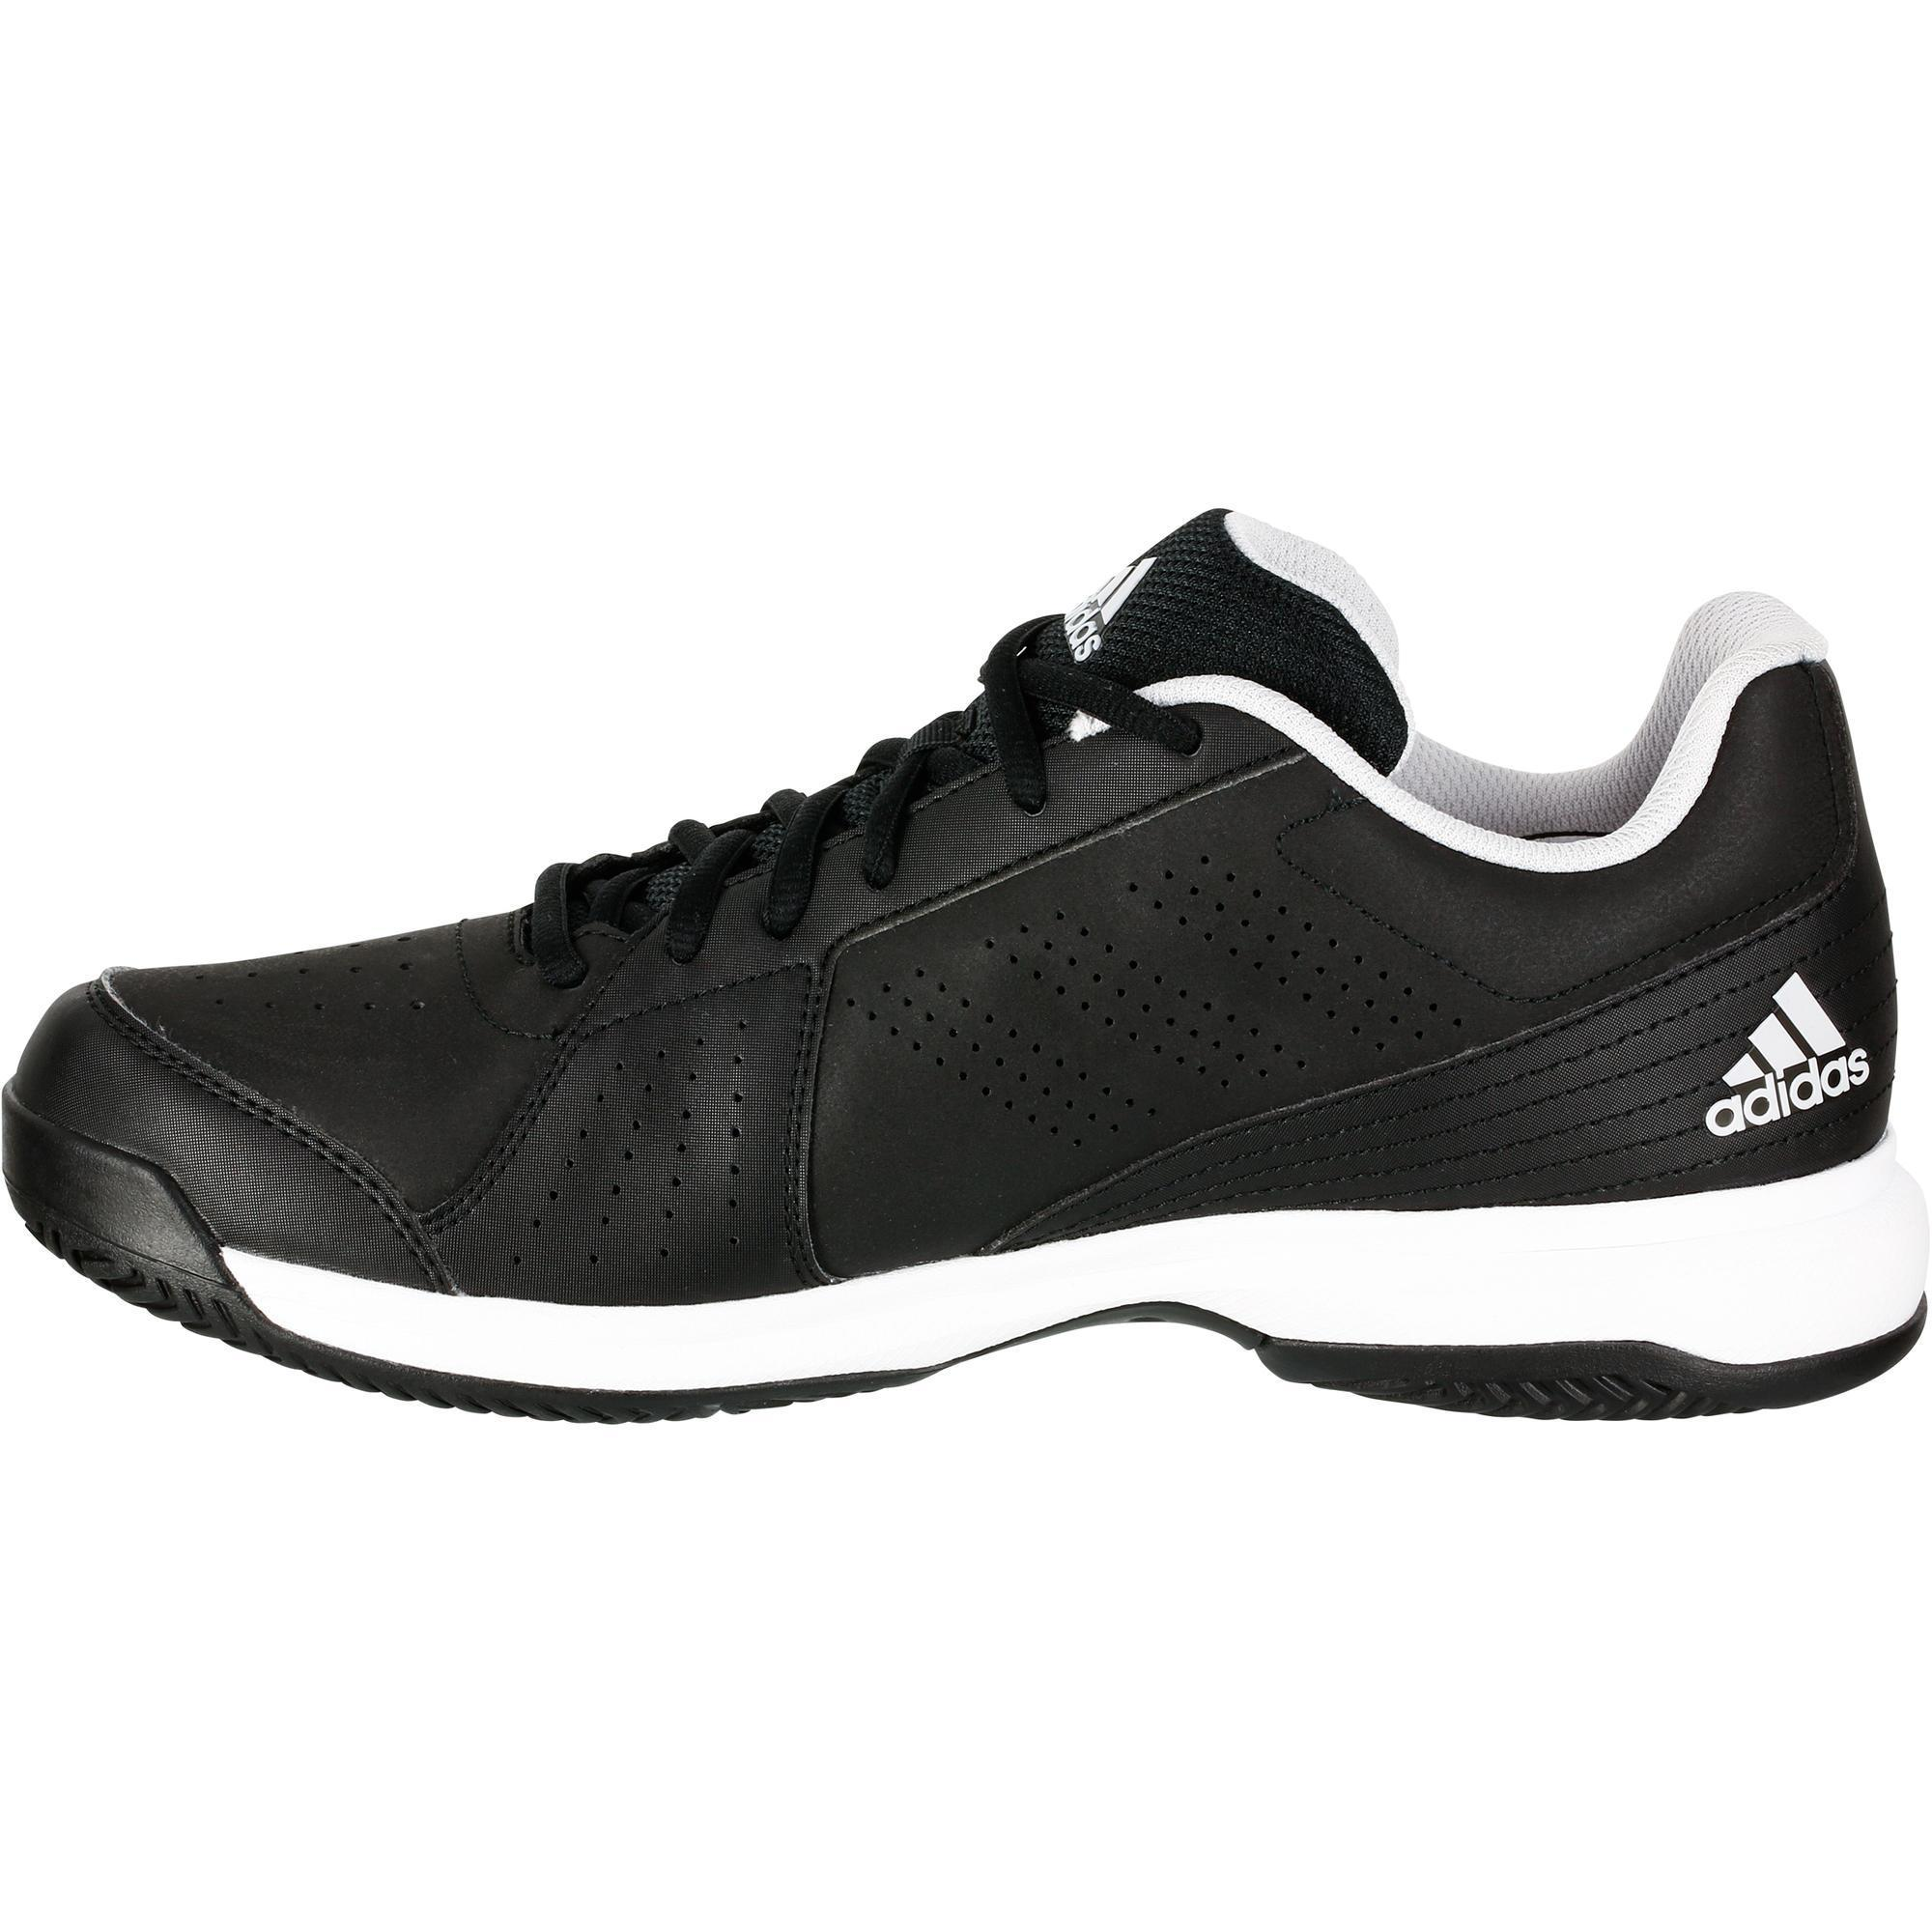 buy online 3bdb4 46e41 Homme Court Decathlon Adidas Chaussure Approach Tennis Noir Multi 1w6xgY